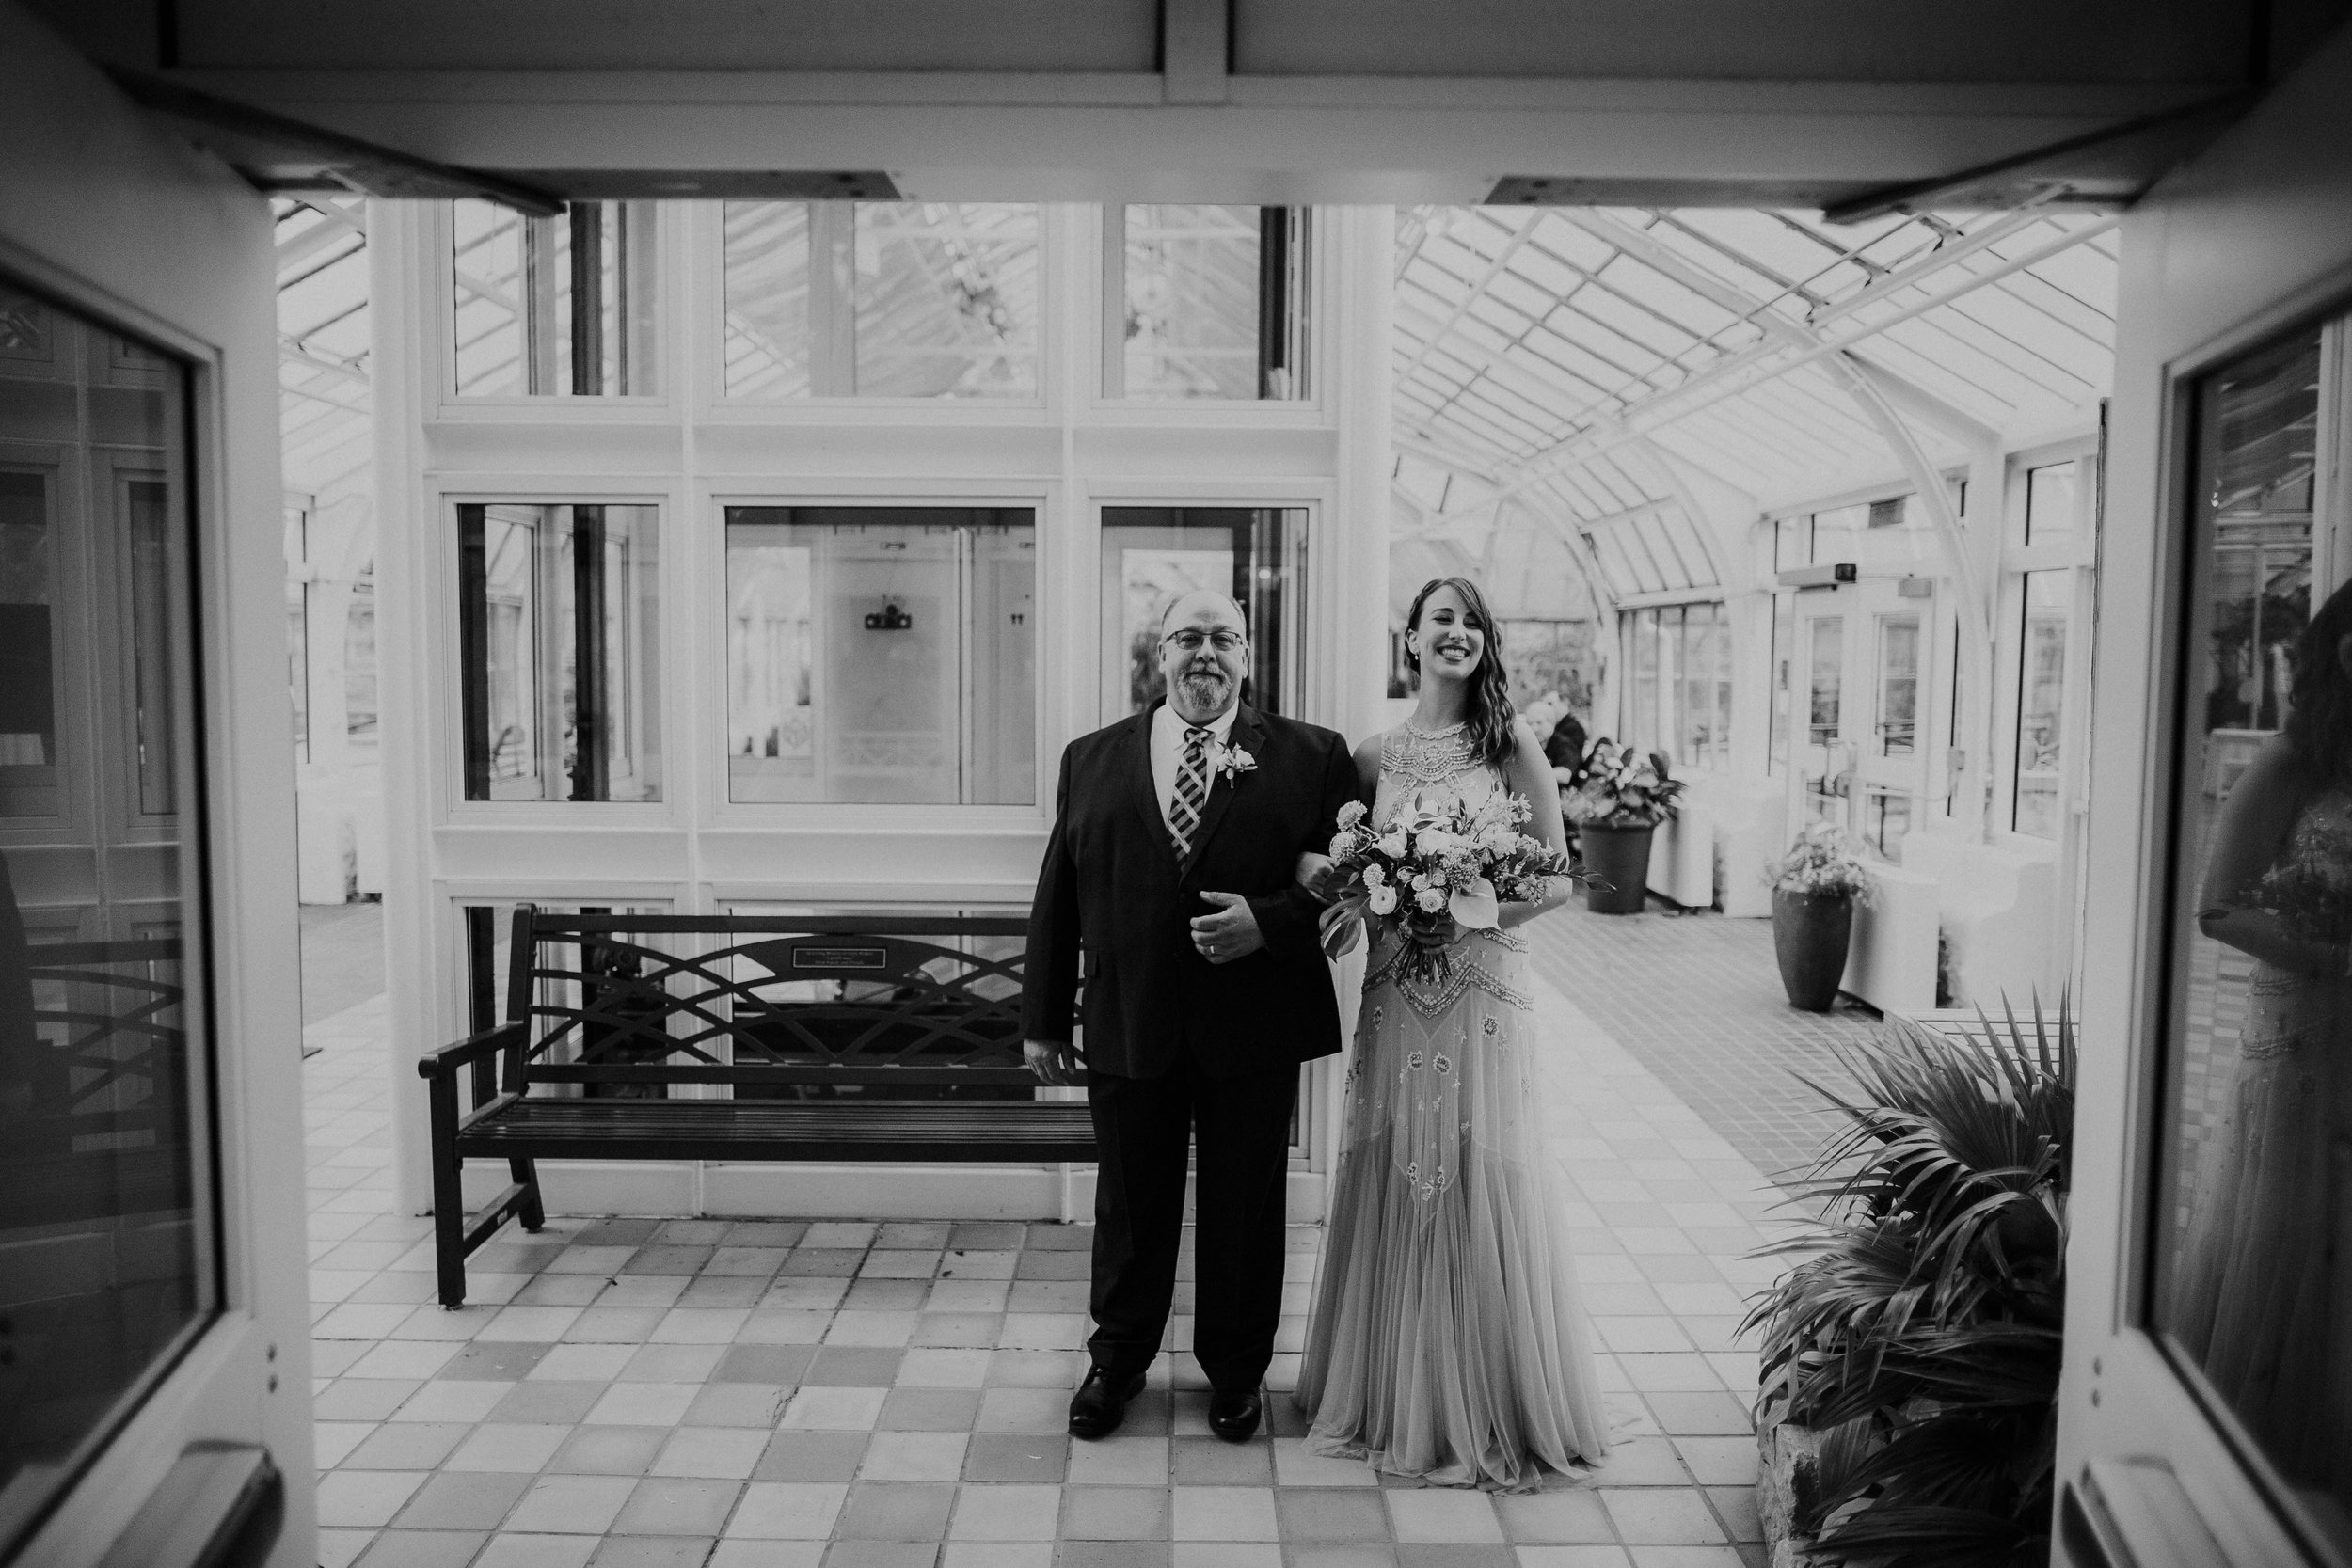 franklin park conservatory wedding columbus ohio wedding photographer grace e jones photography221.jpg